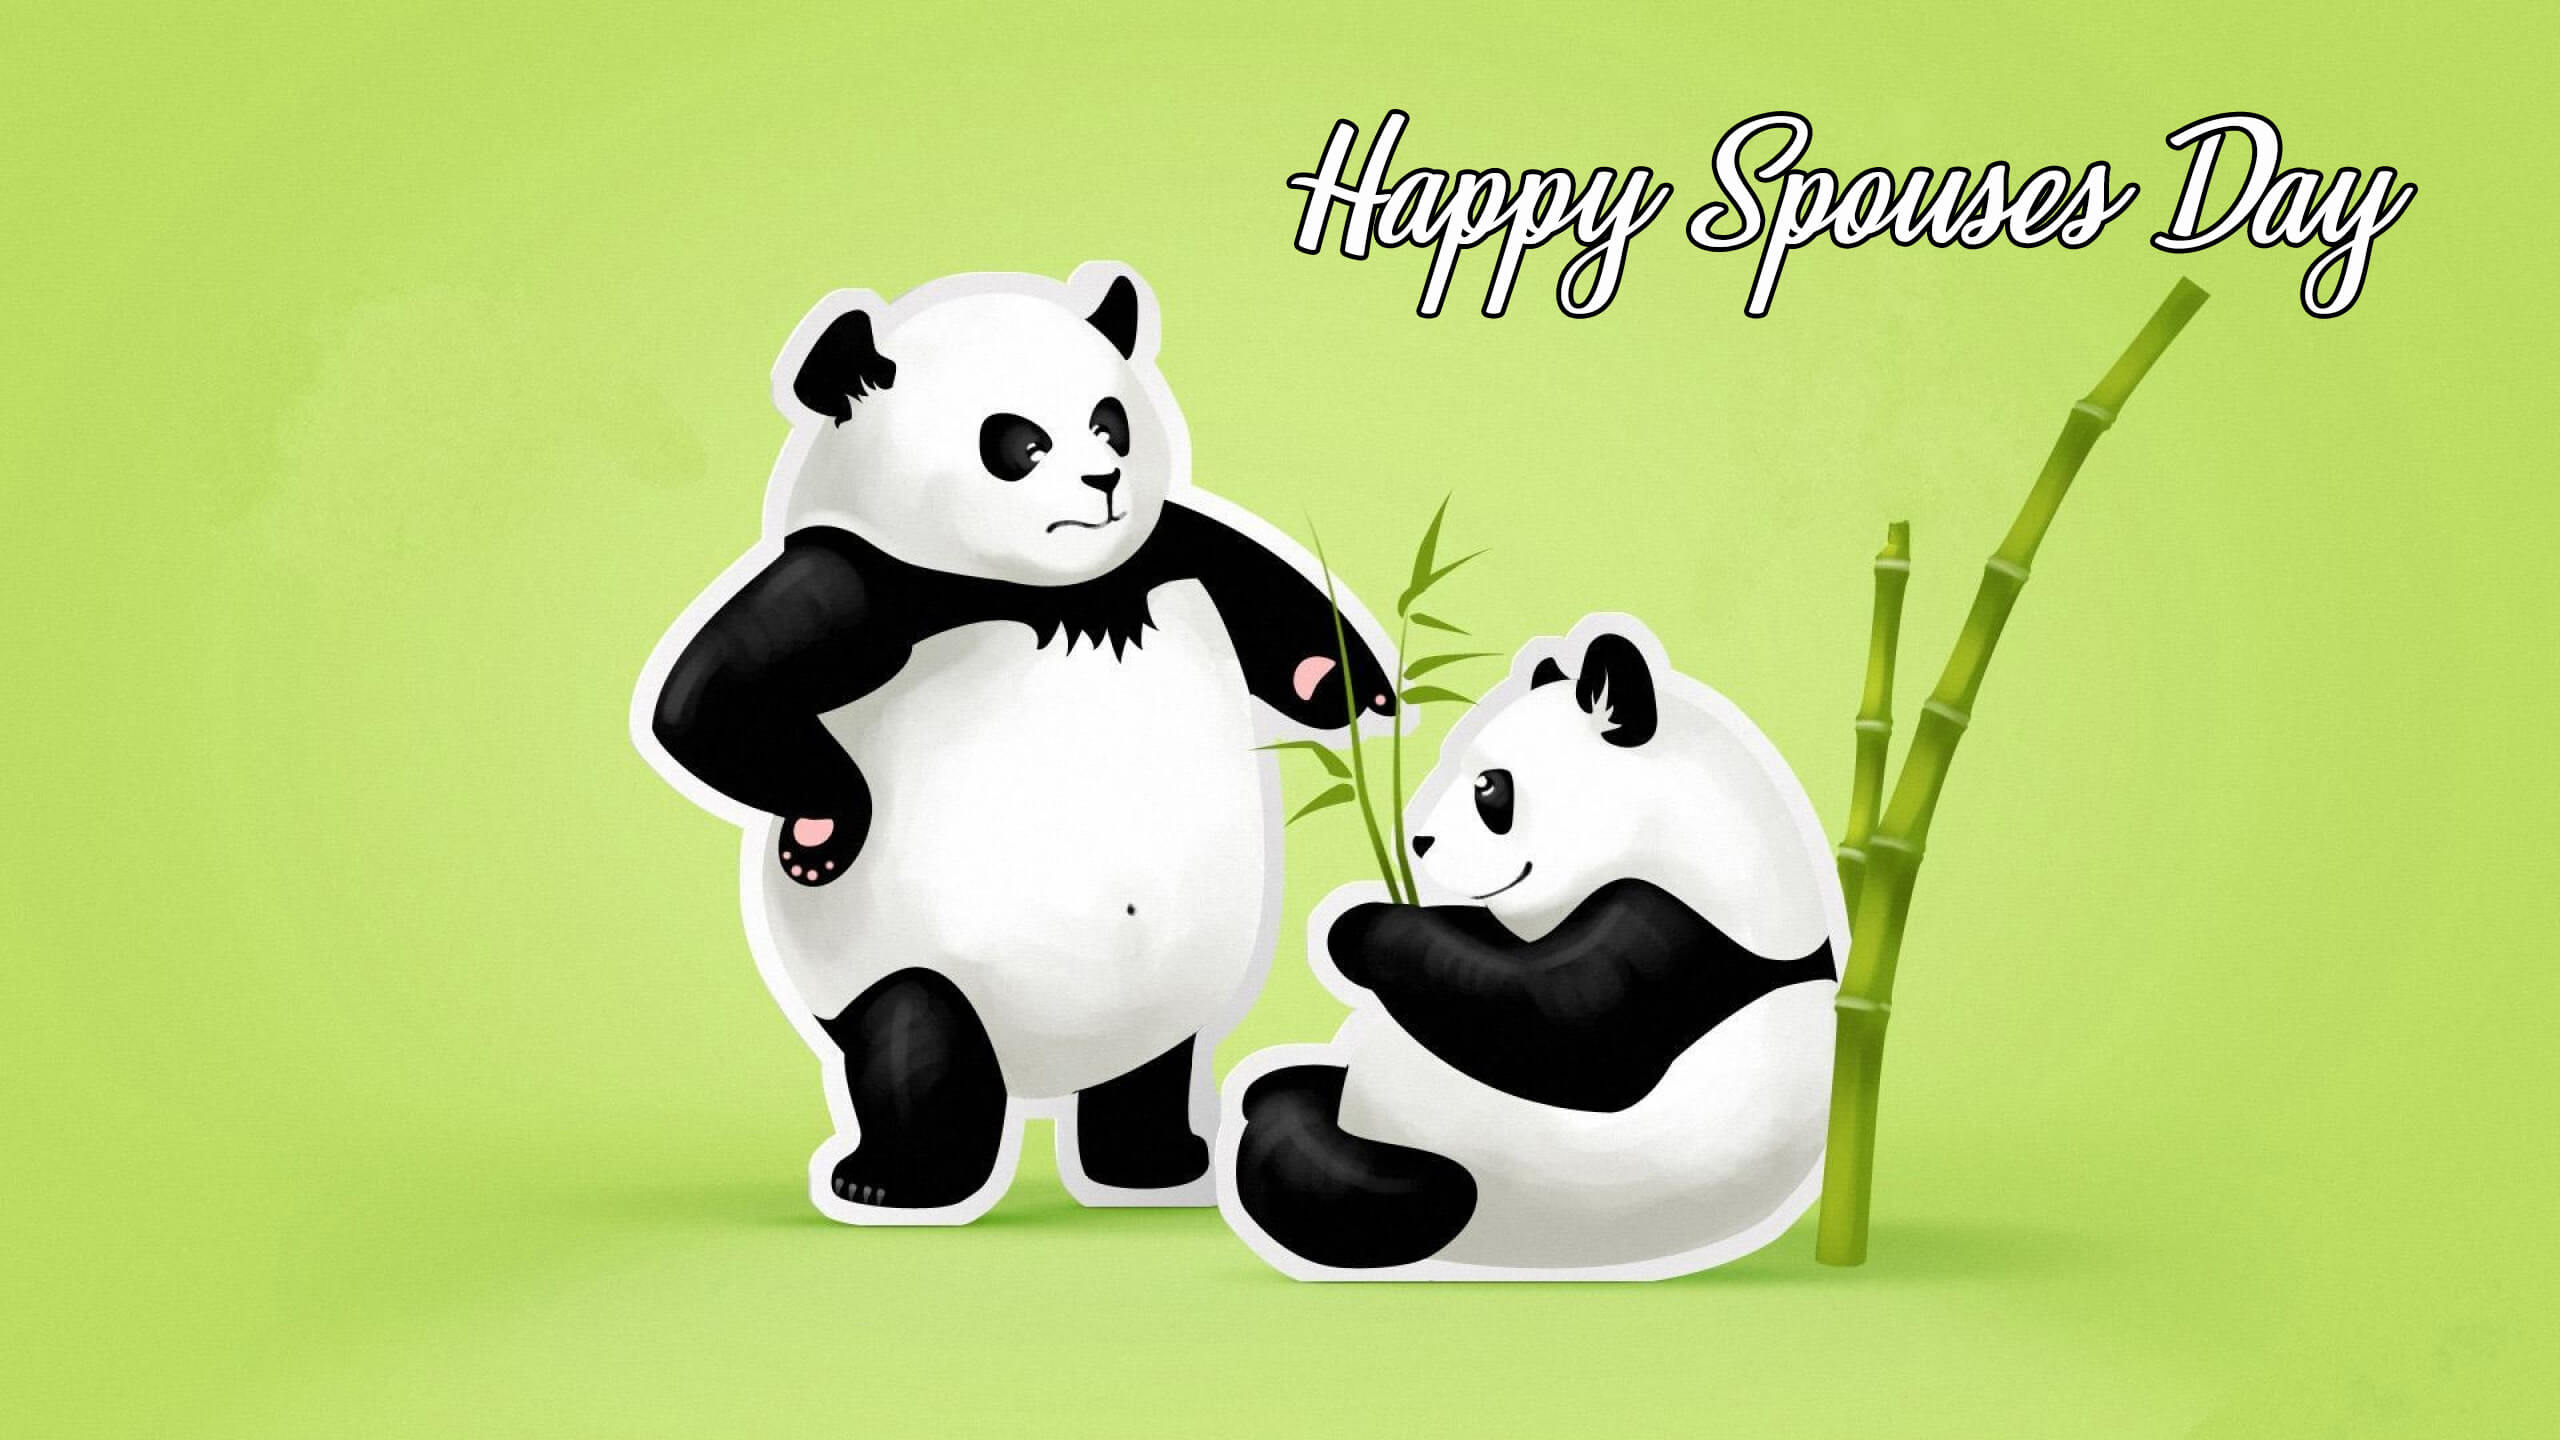 happy spouses day wishes greetings pandas desktop hd wallpaper